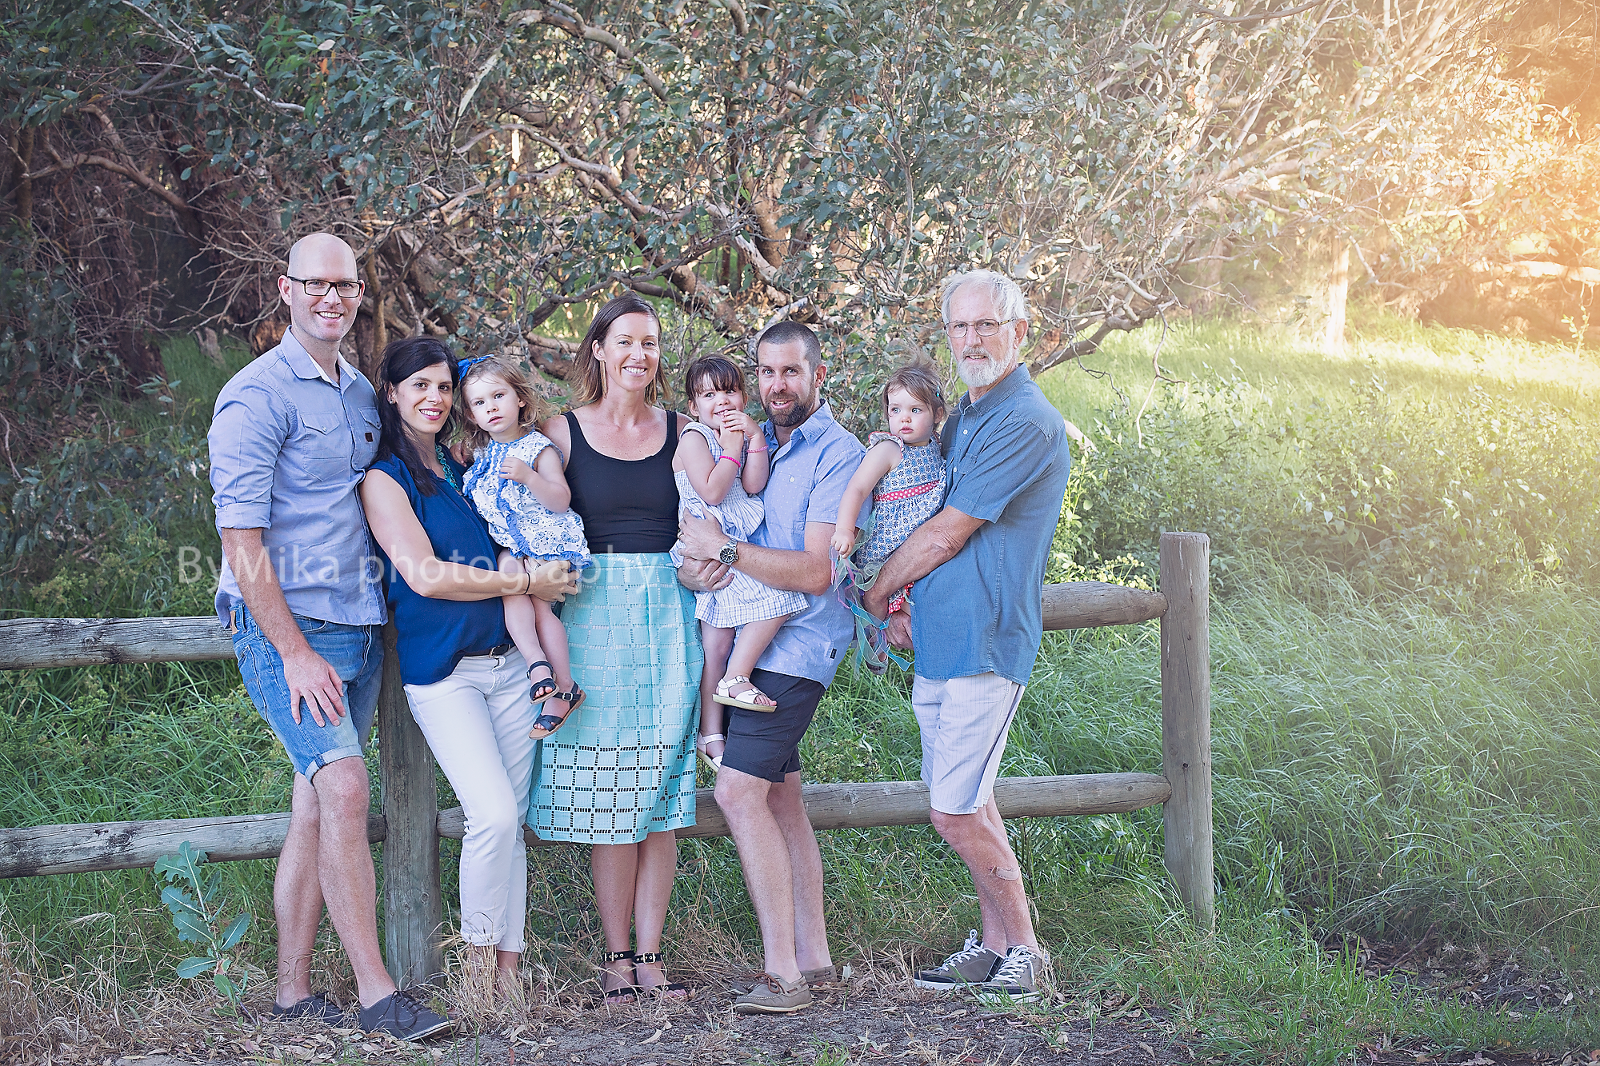 Large family photography sessions are so much fun, call ByMika photographer